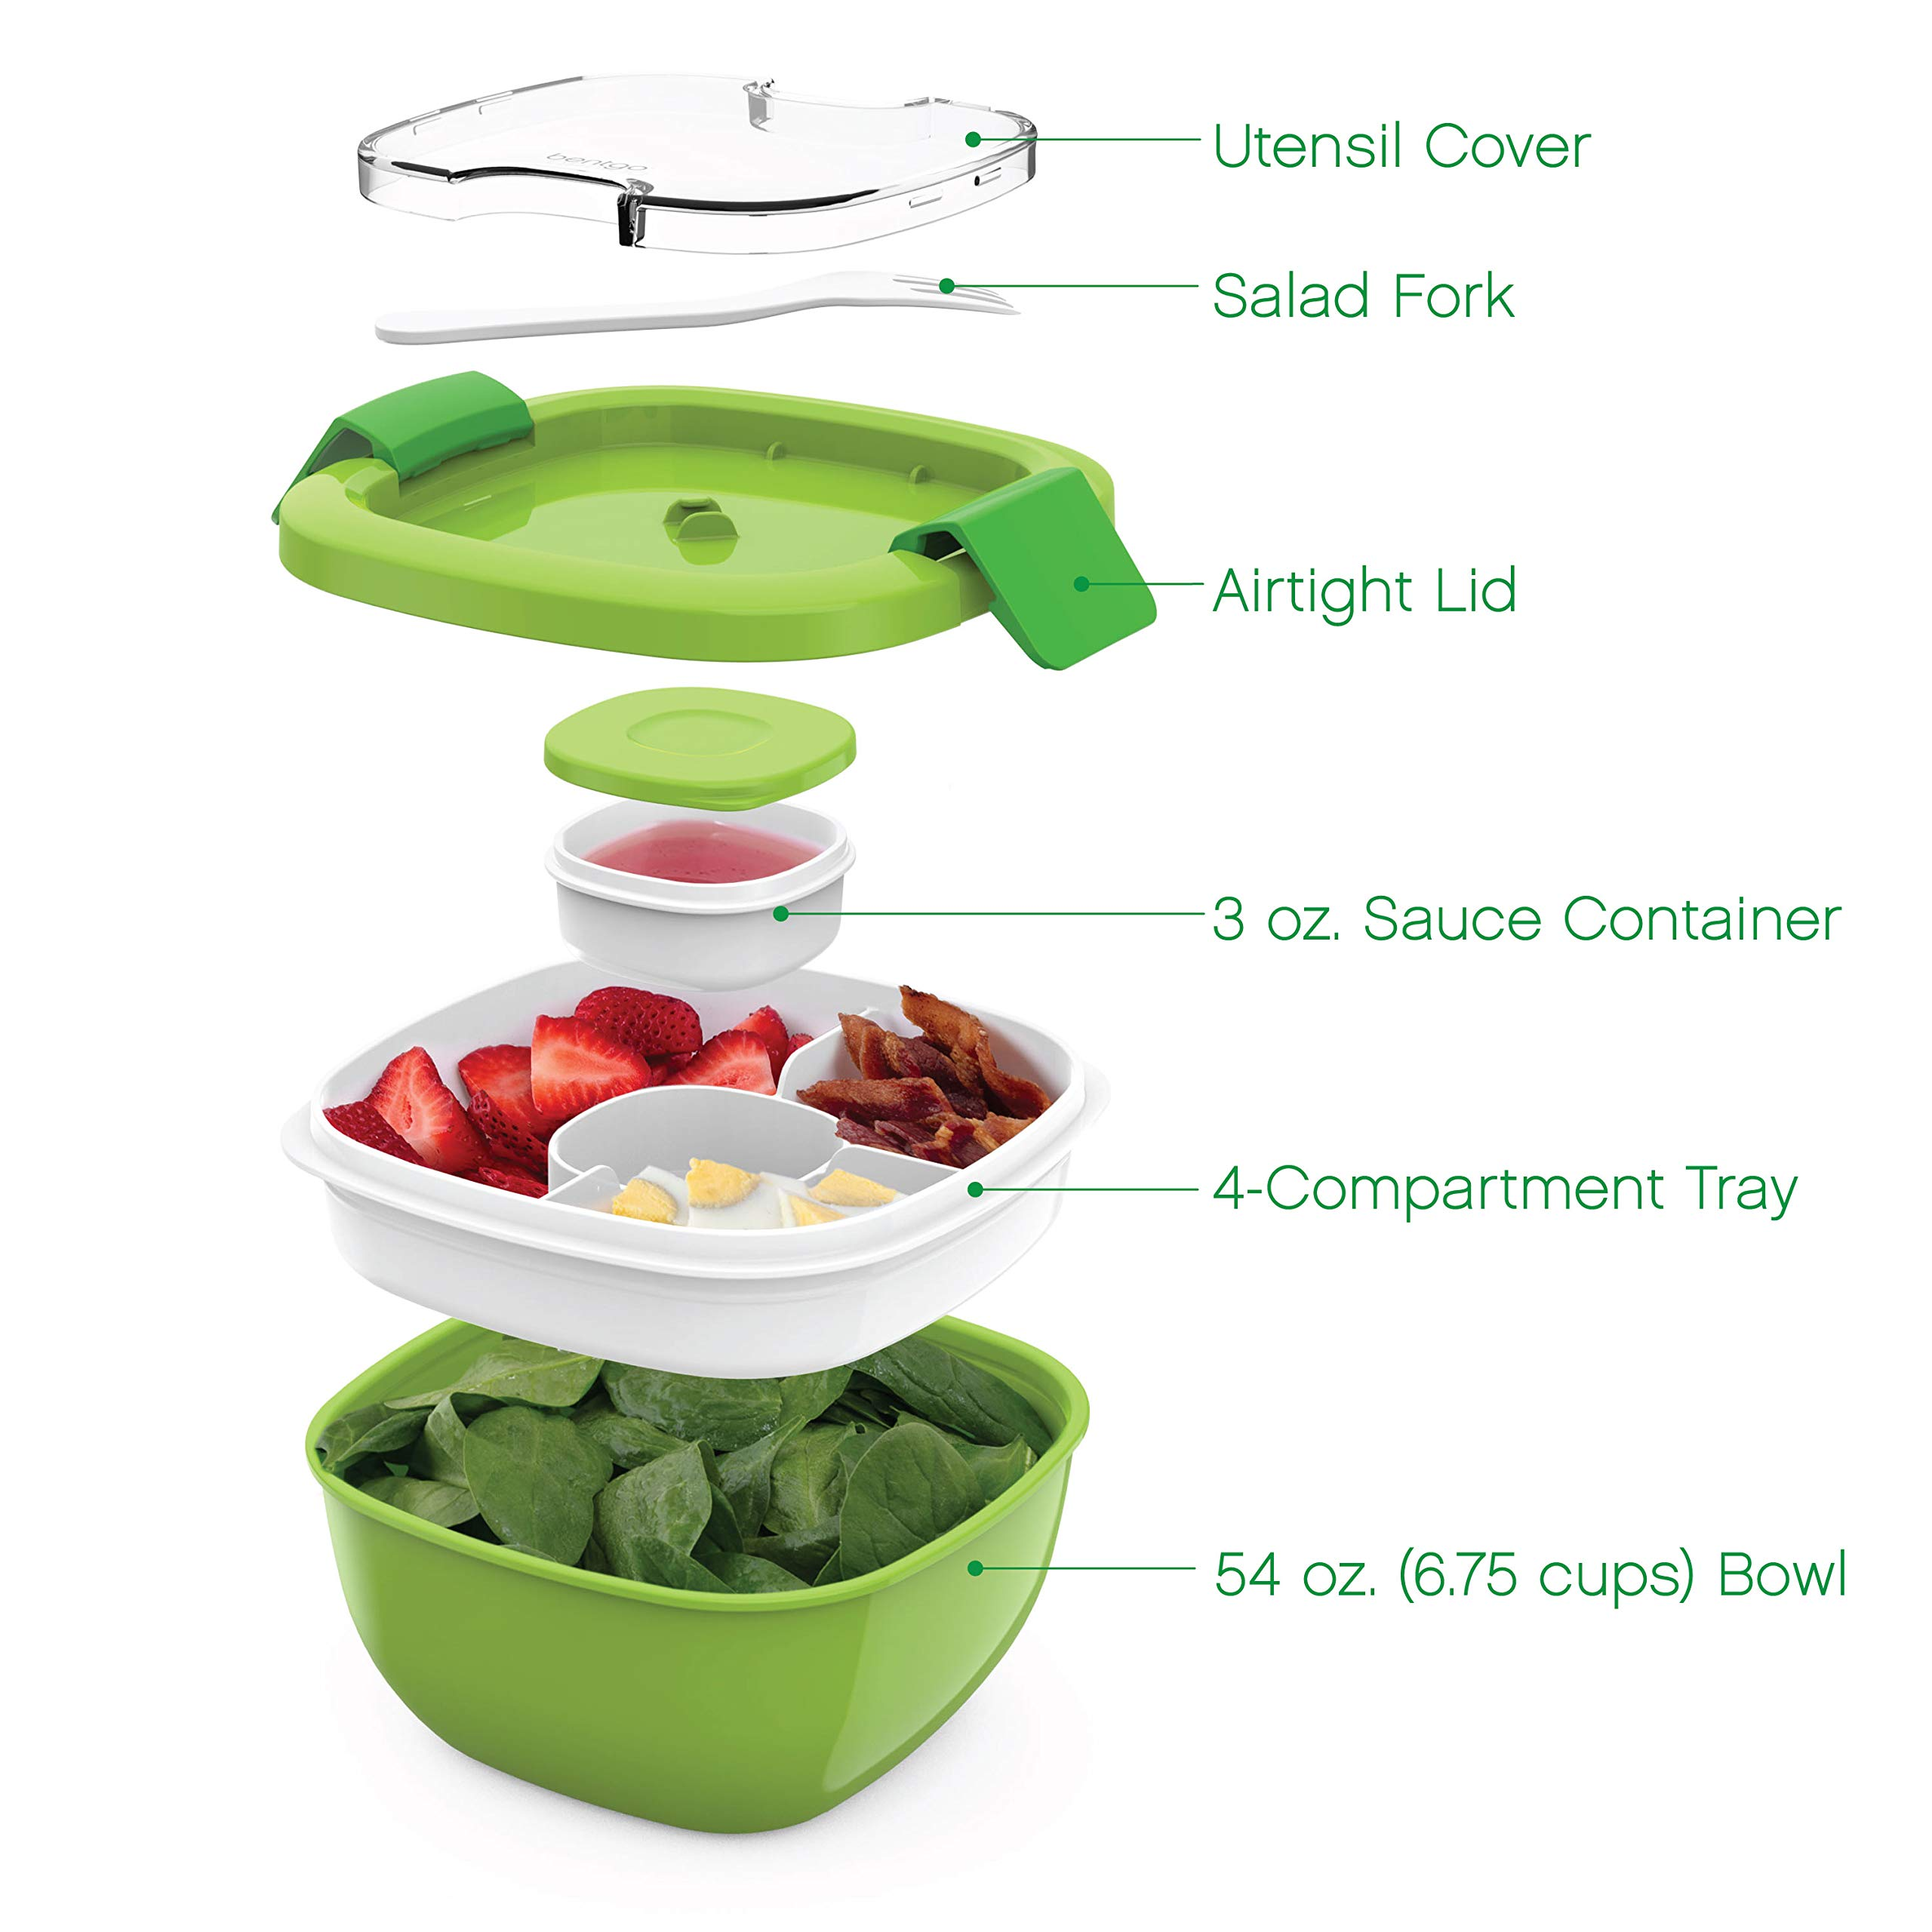 Bentgo Salad (Green) BPA-Free Lunch Container with Large 54-oz Salad Bowl, 3-Compartment Bento-Style Tray for Salad Toppings and Snacks, 3-oz Sauce Container for Dressings, and Built-In Reusable Fork by Bentgo (Image #3)